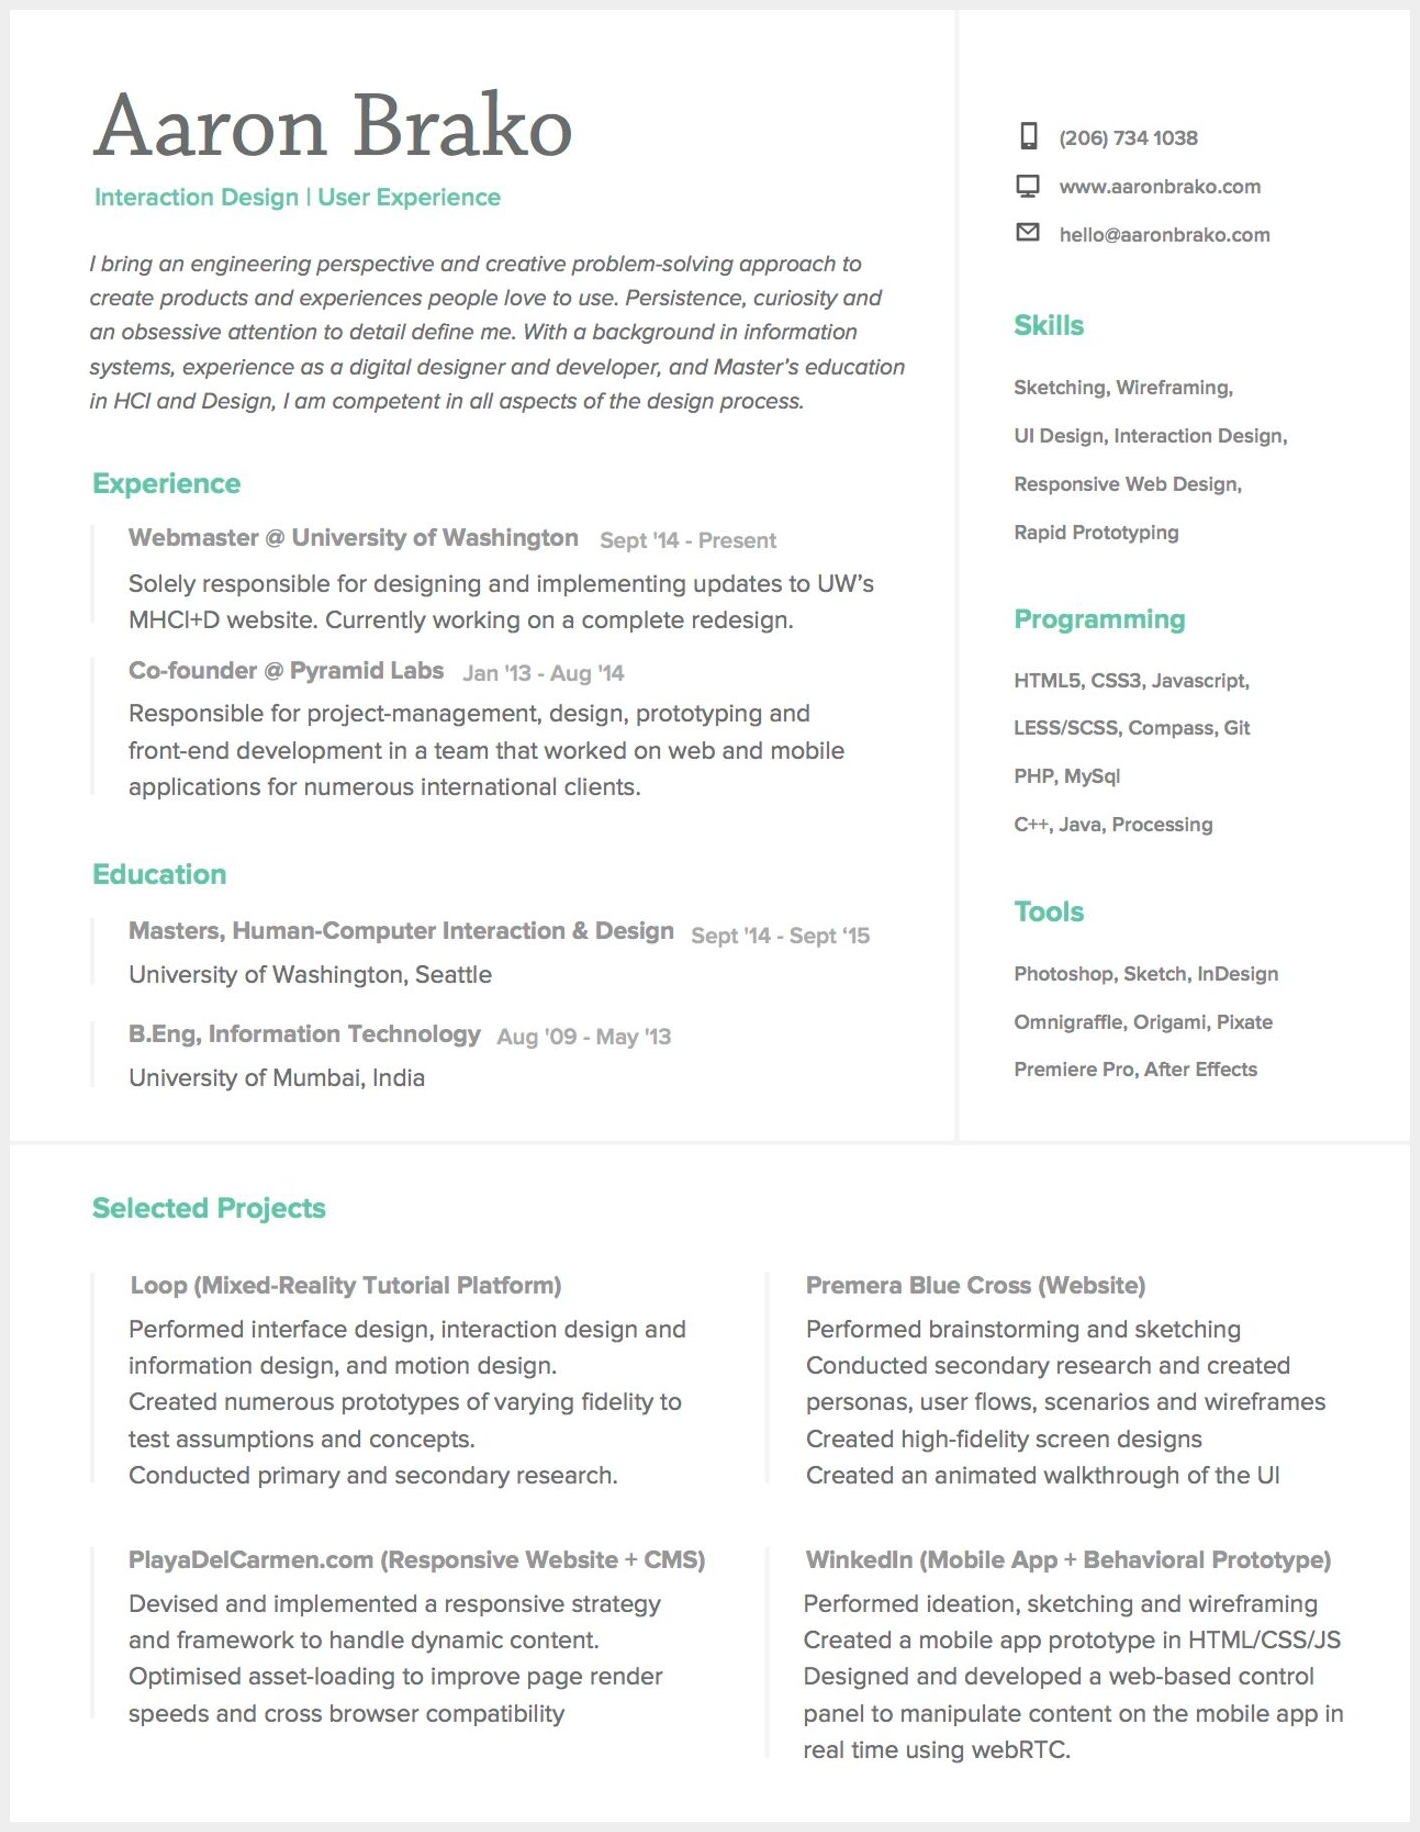 UX Designer Resume: How to Write a Great UX Designer CV? - Resume 2